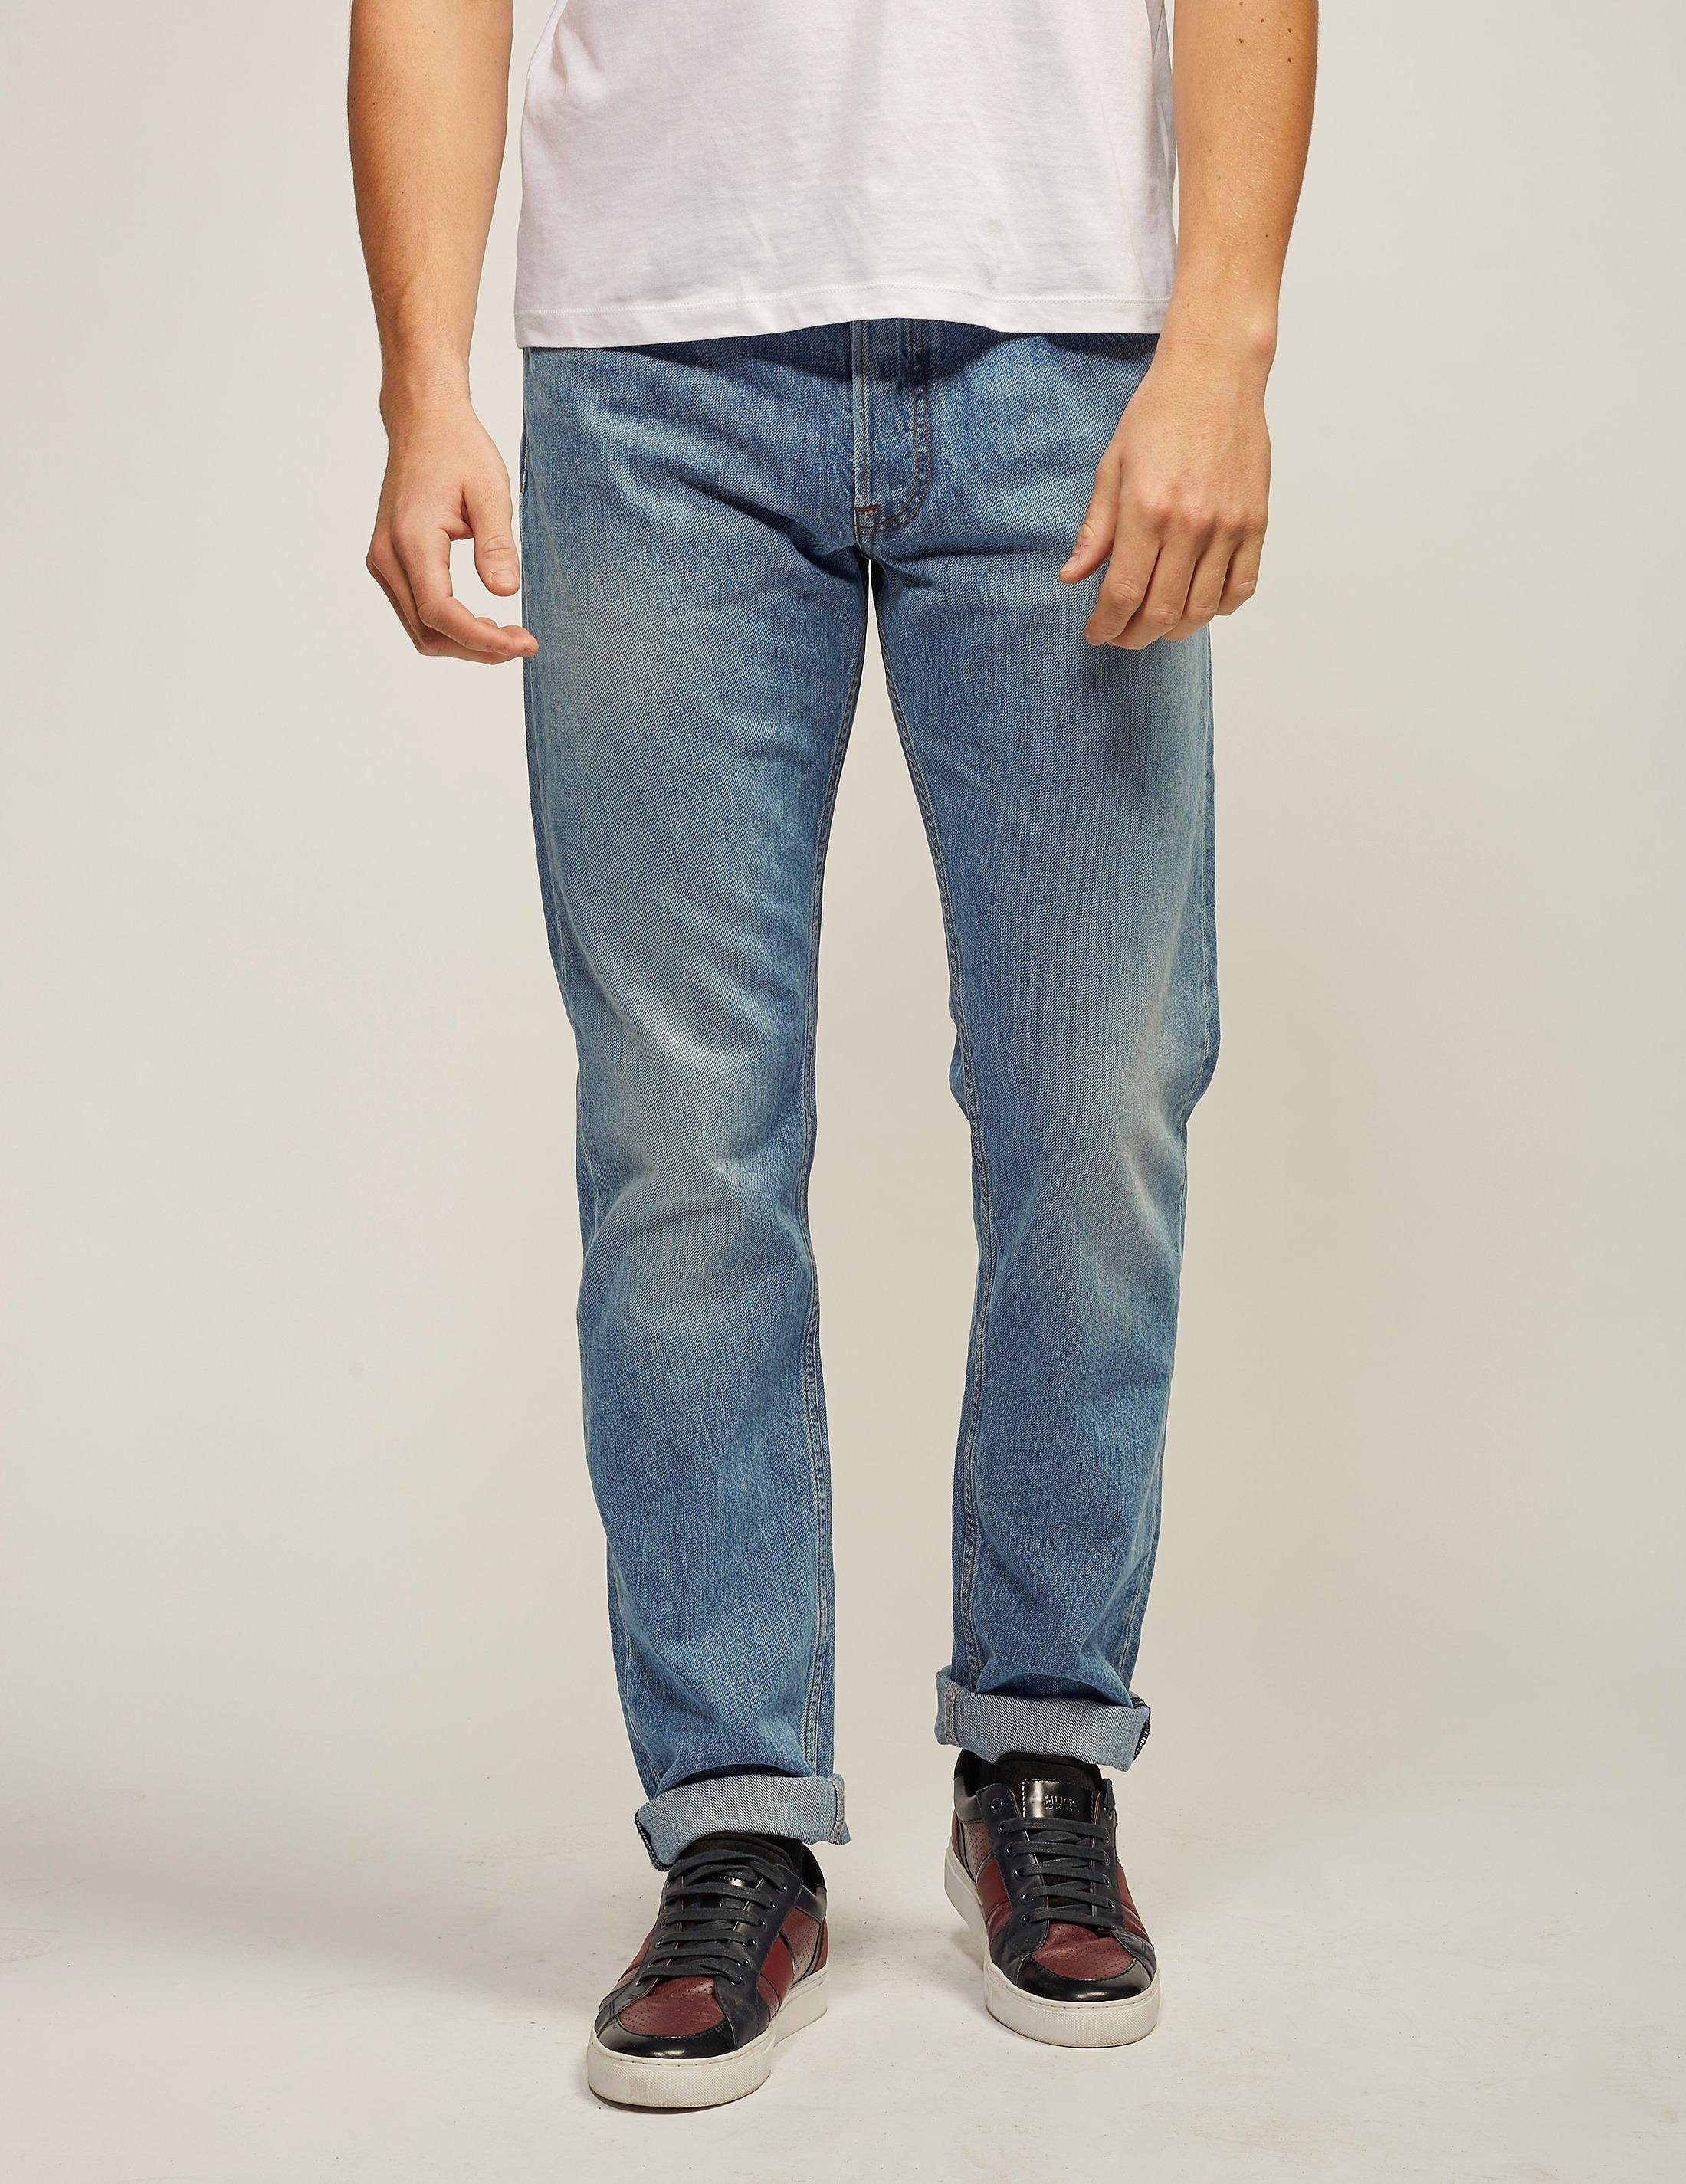 Stone Island Washed Denim Tapered Fit Jeans - Long